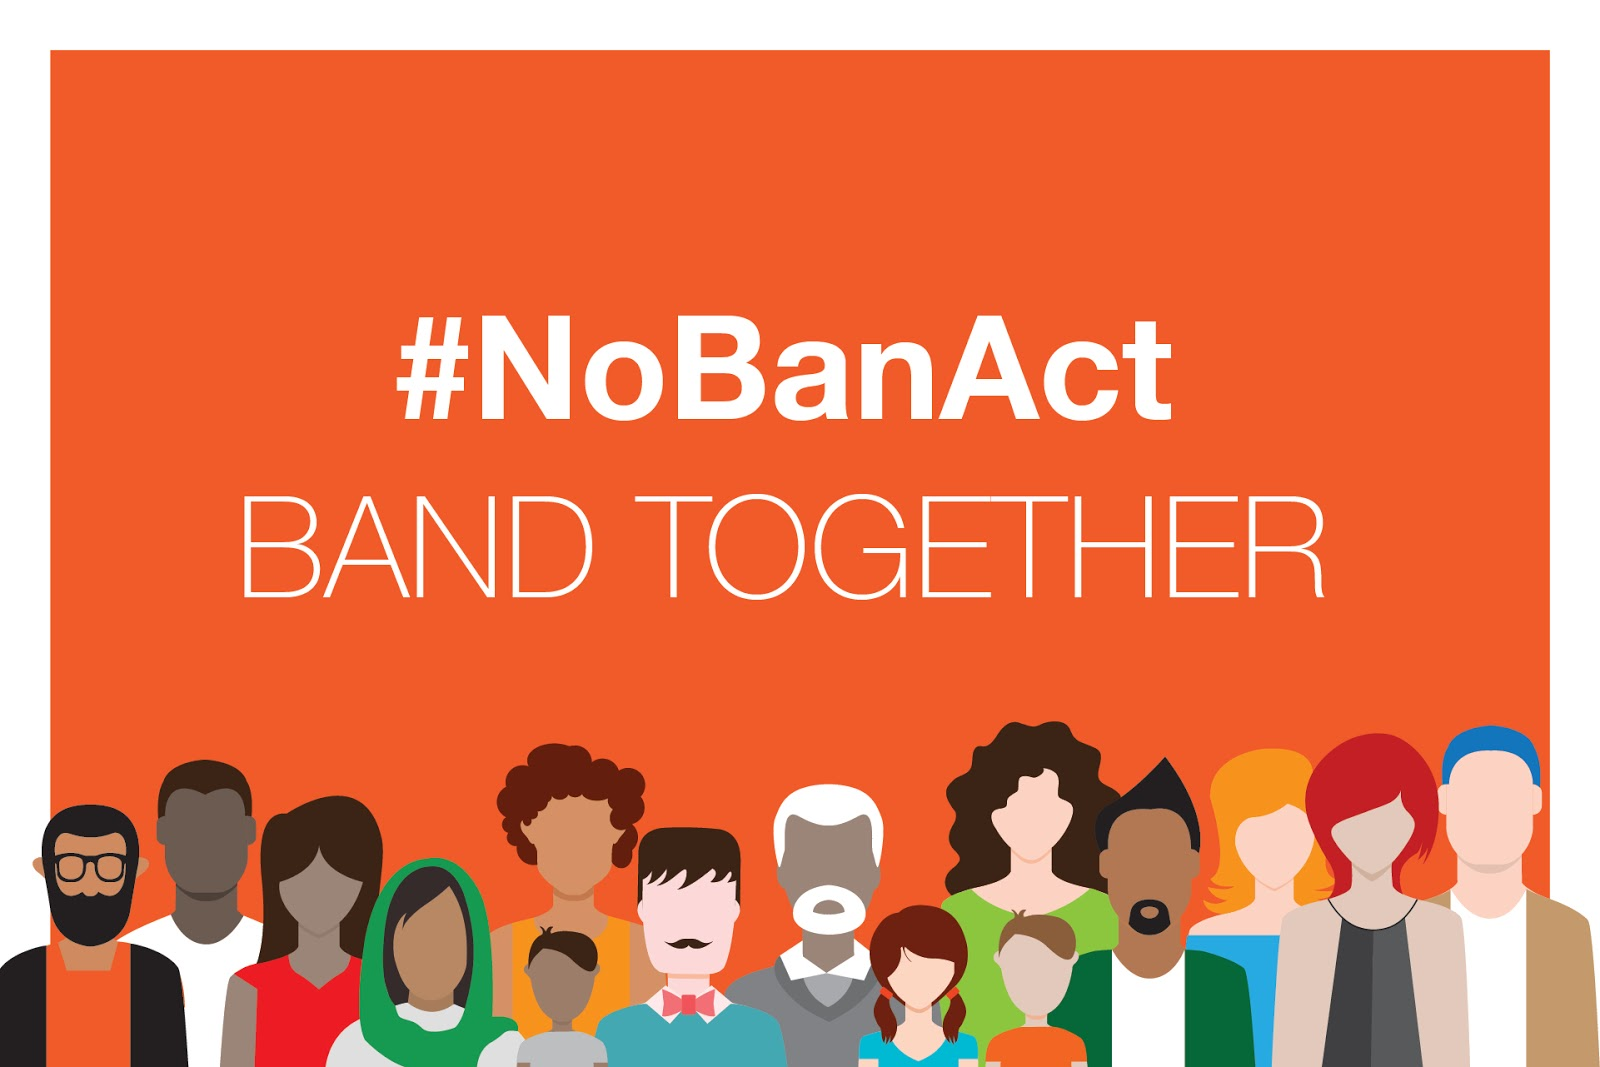 - 384 Organizations Urge Congress to Pass #NoBanAct